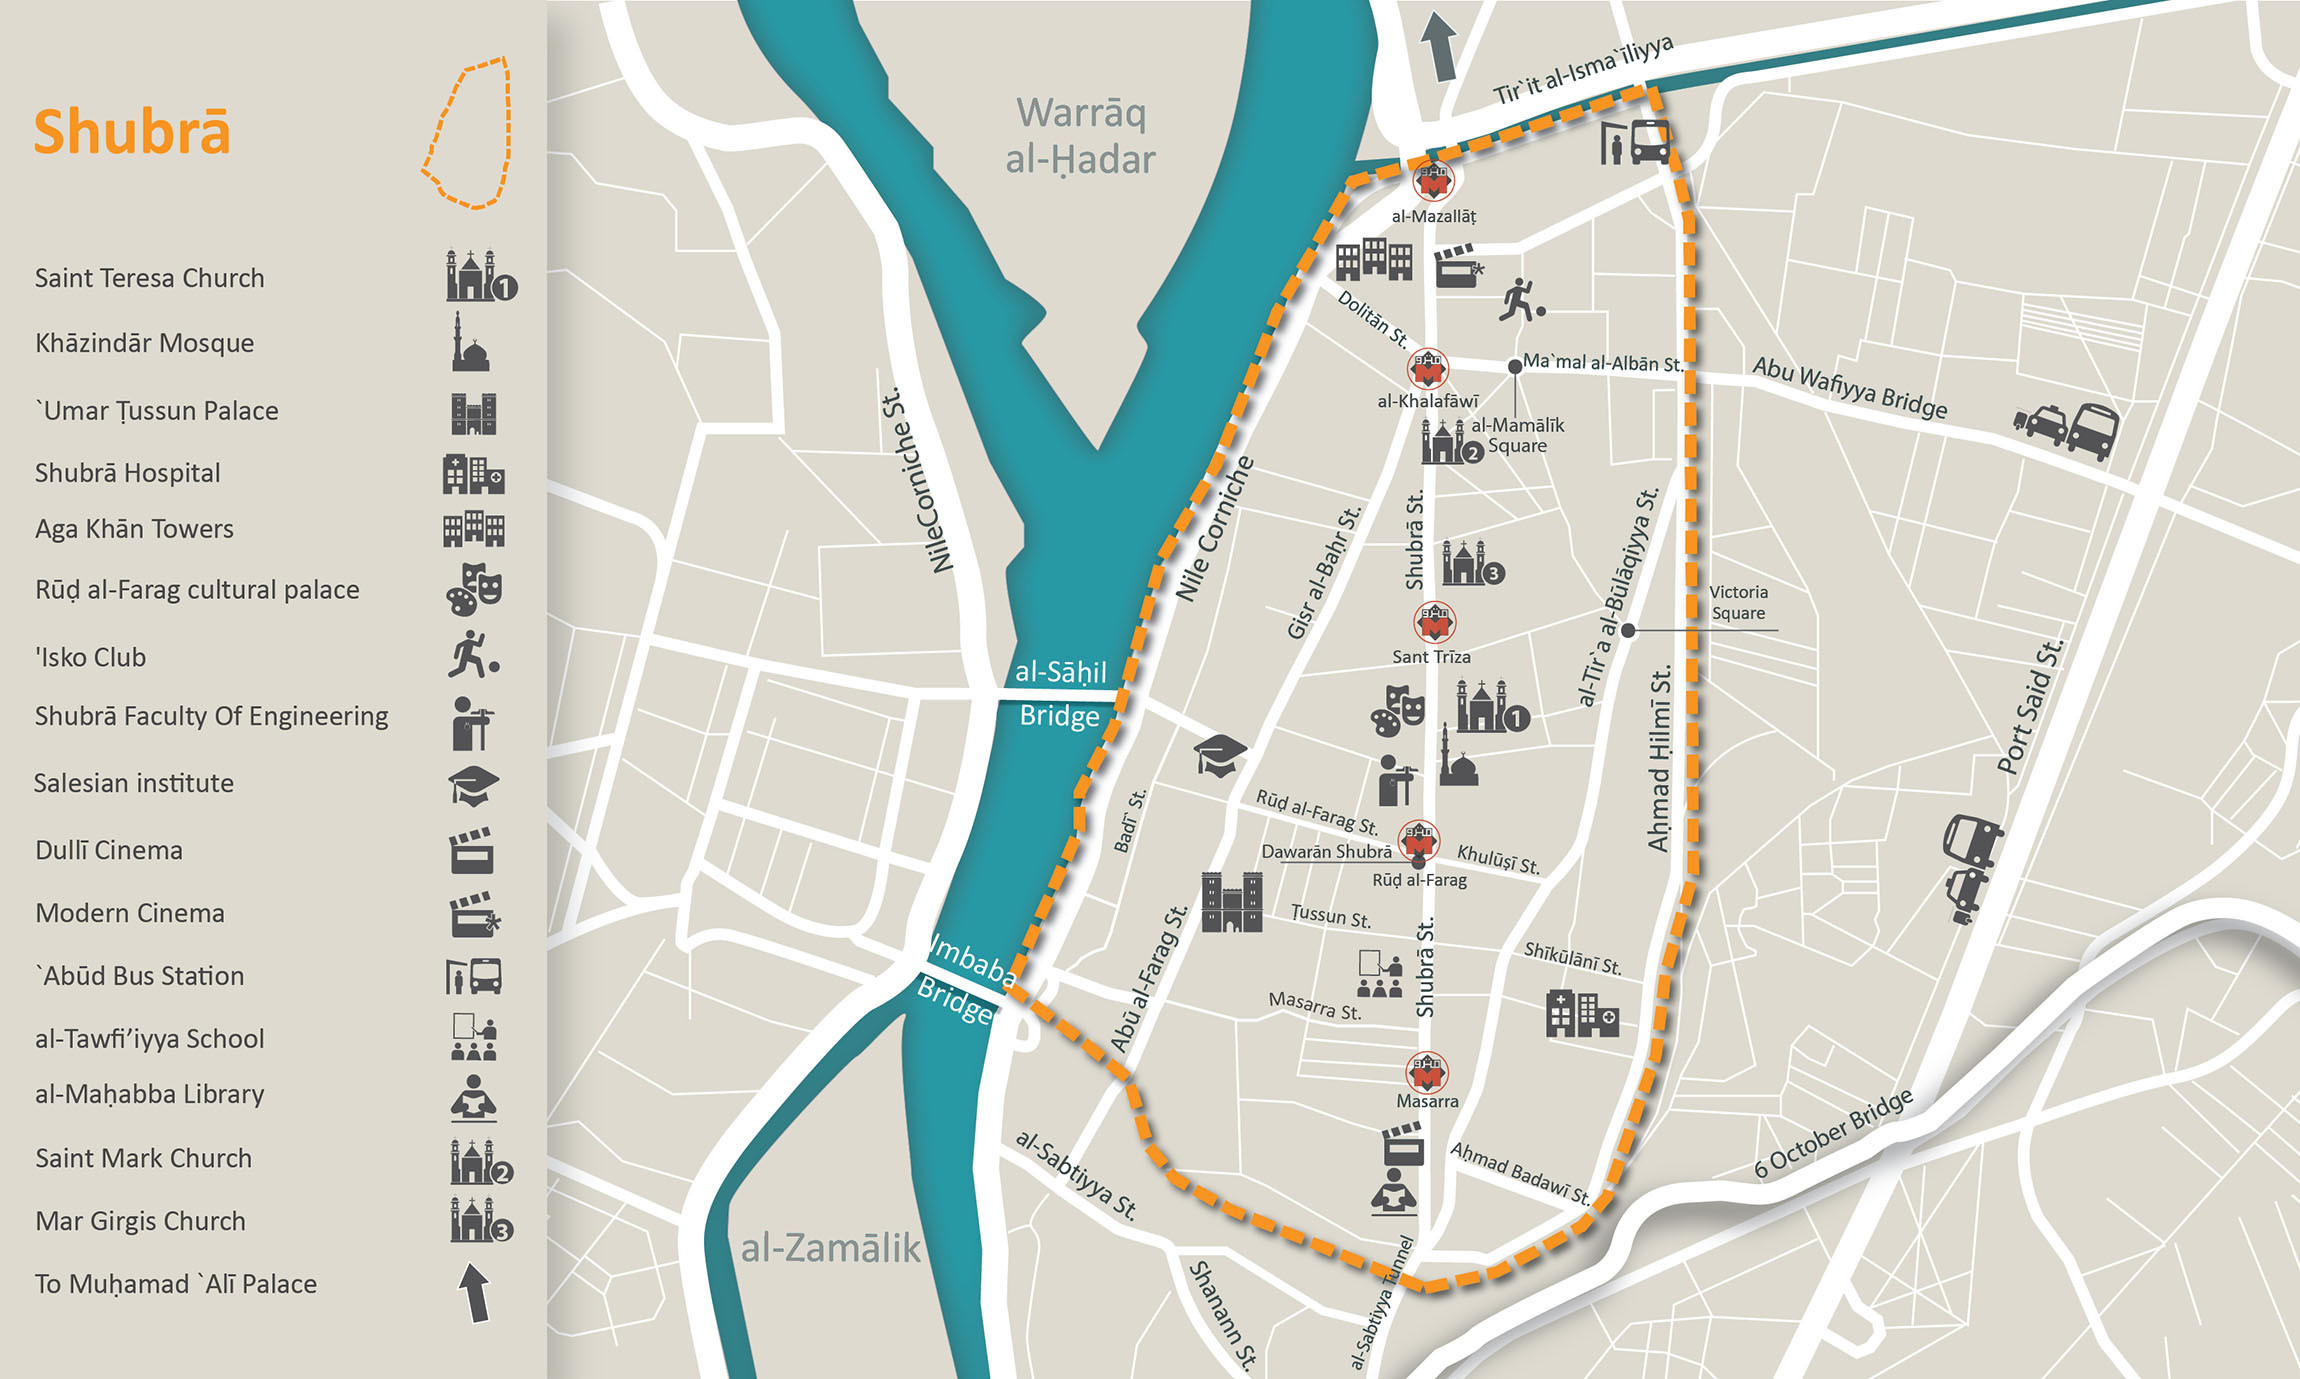 Shubra's main landmarks as highlighted by its residents